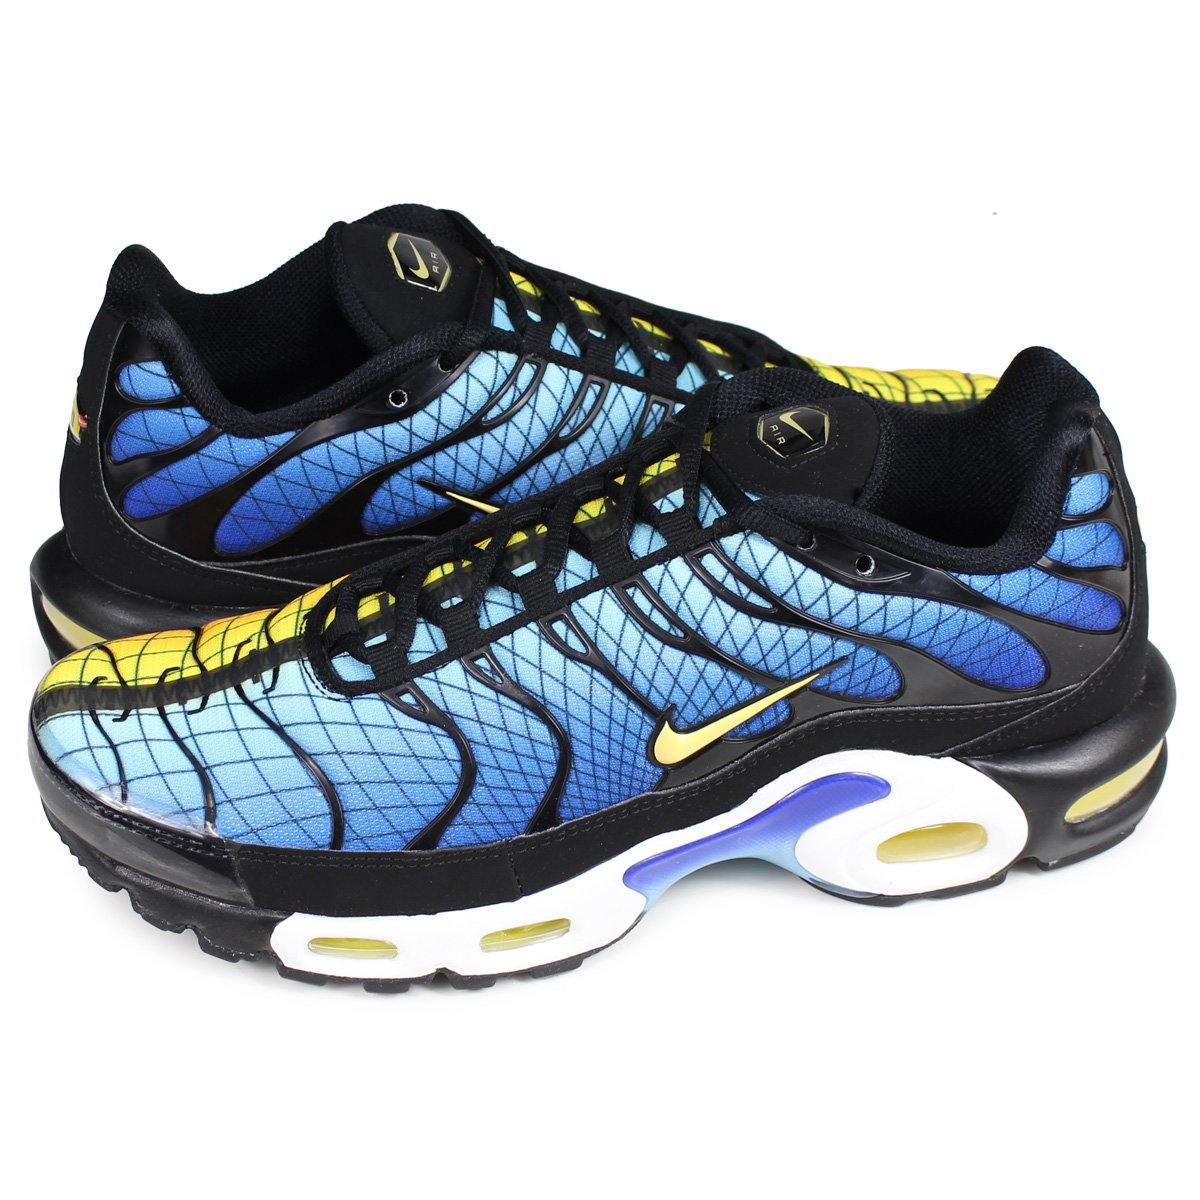 best website 5ca2c 5a2cf Nike NIKE Air Max plus sneakers men AIR MAX PLUS TN SE GREEDY black black  AV7021-001